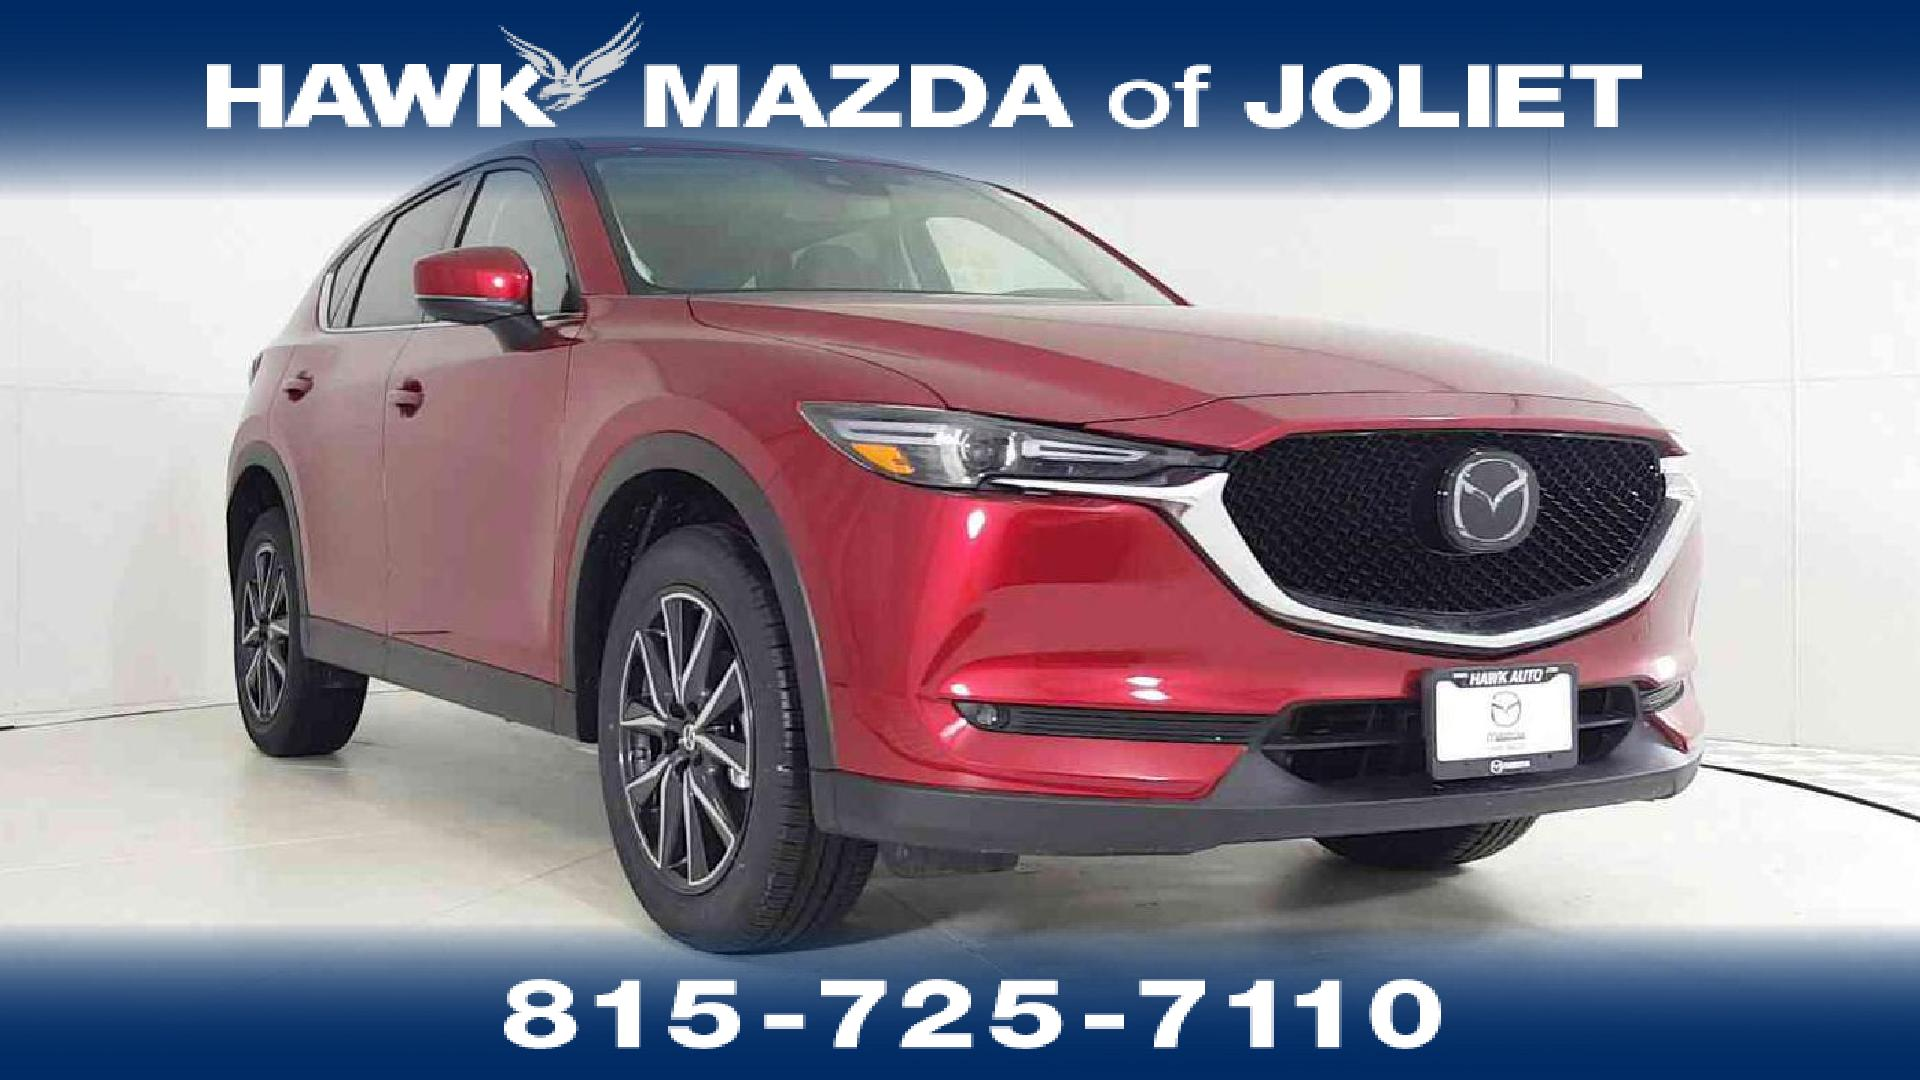 Hawk Mazda is a Joliet Mazda dealer and a new car and used car